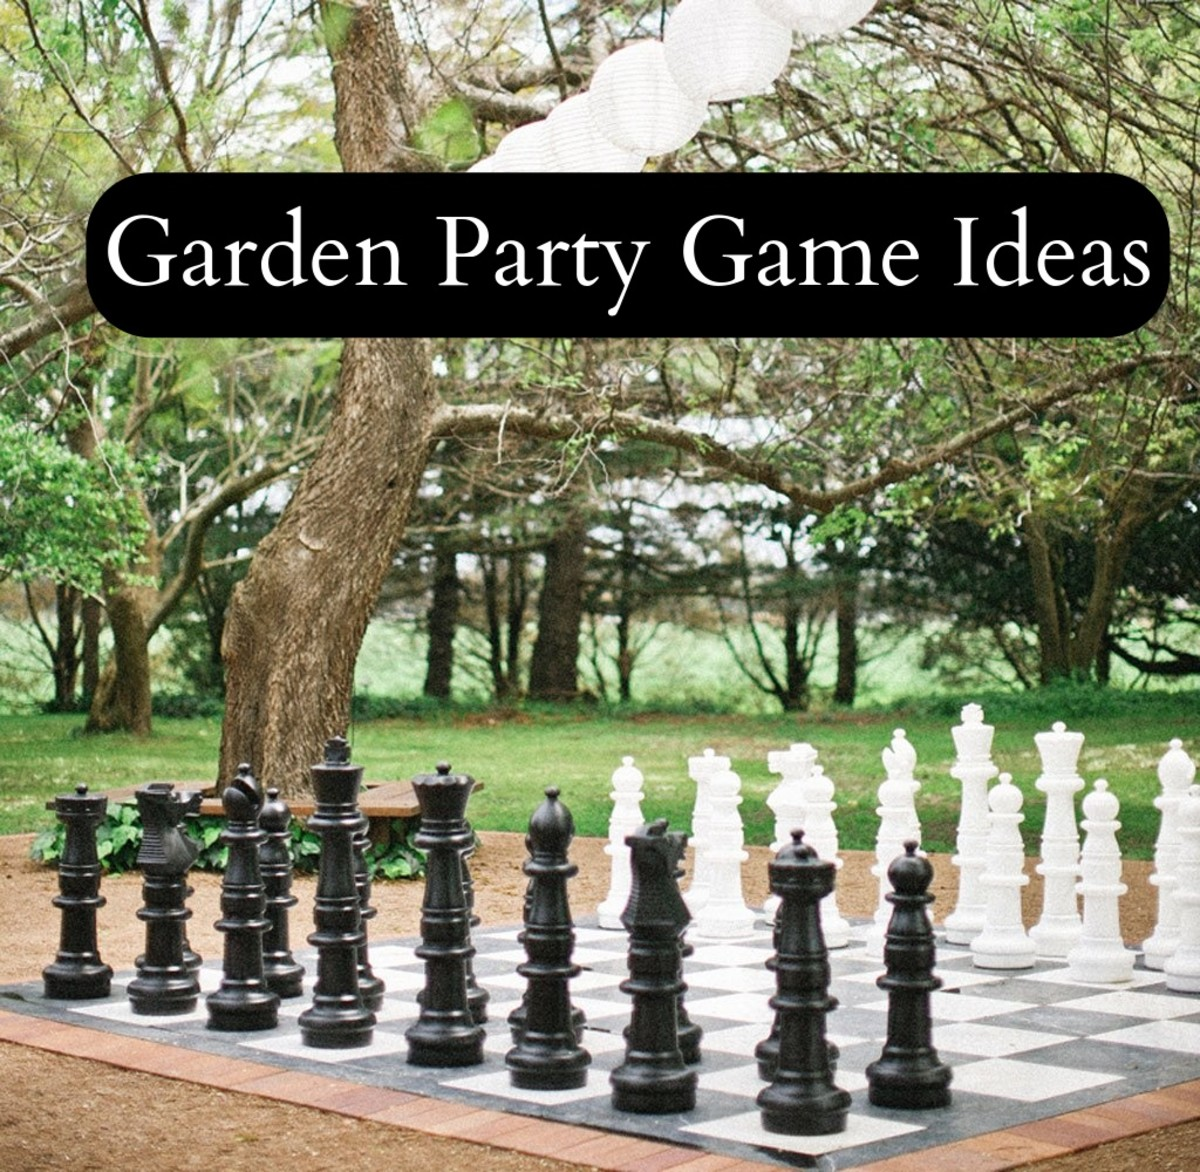 Have fun games out in the yard. People like games that make it easier to interact with other people. Giant size Chess or Checkers boards are popular. Croquet is a classic.